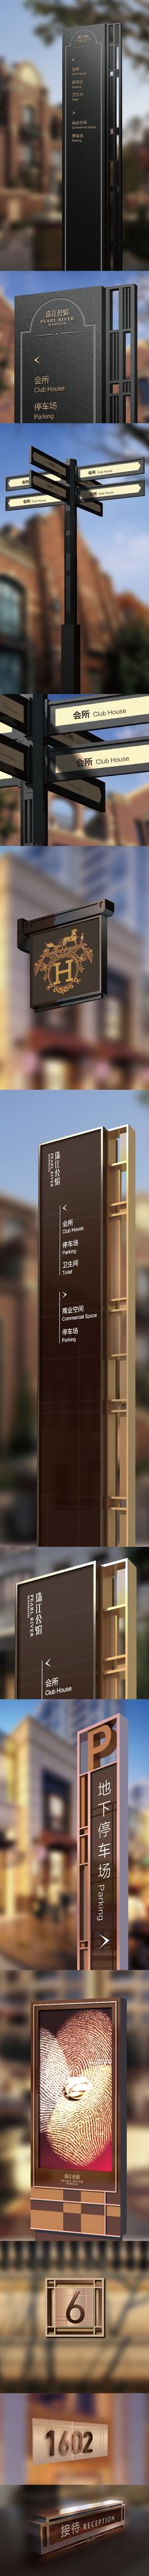 Pearl River mansion Signage system